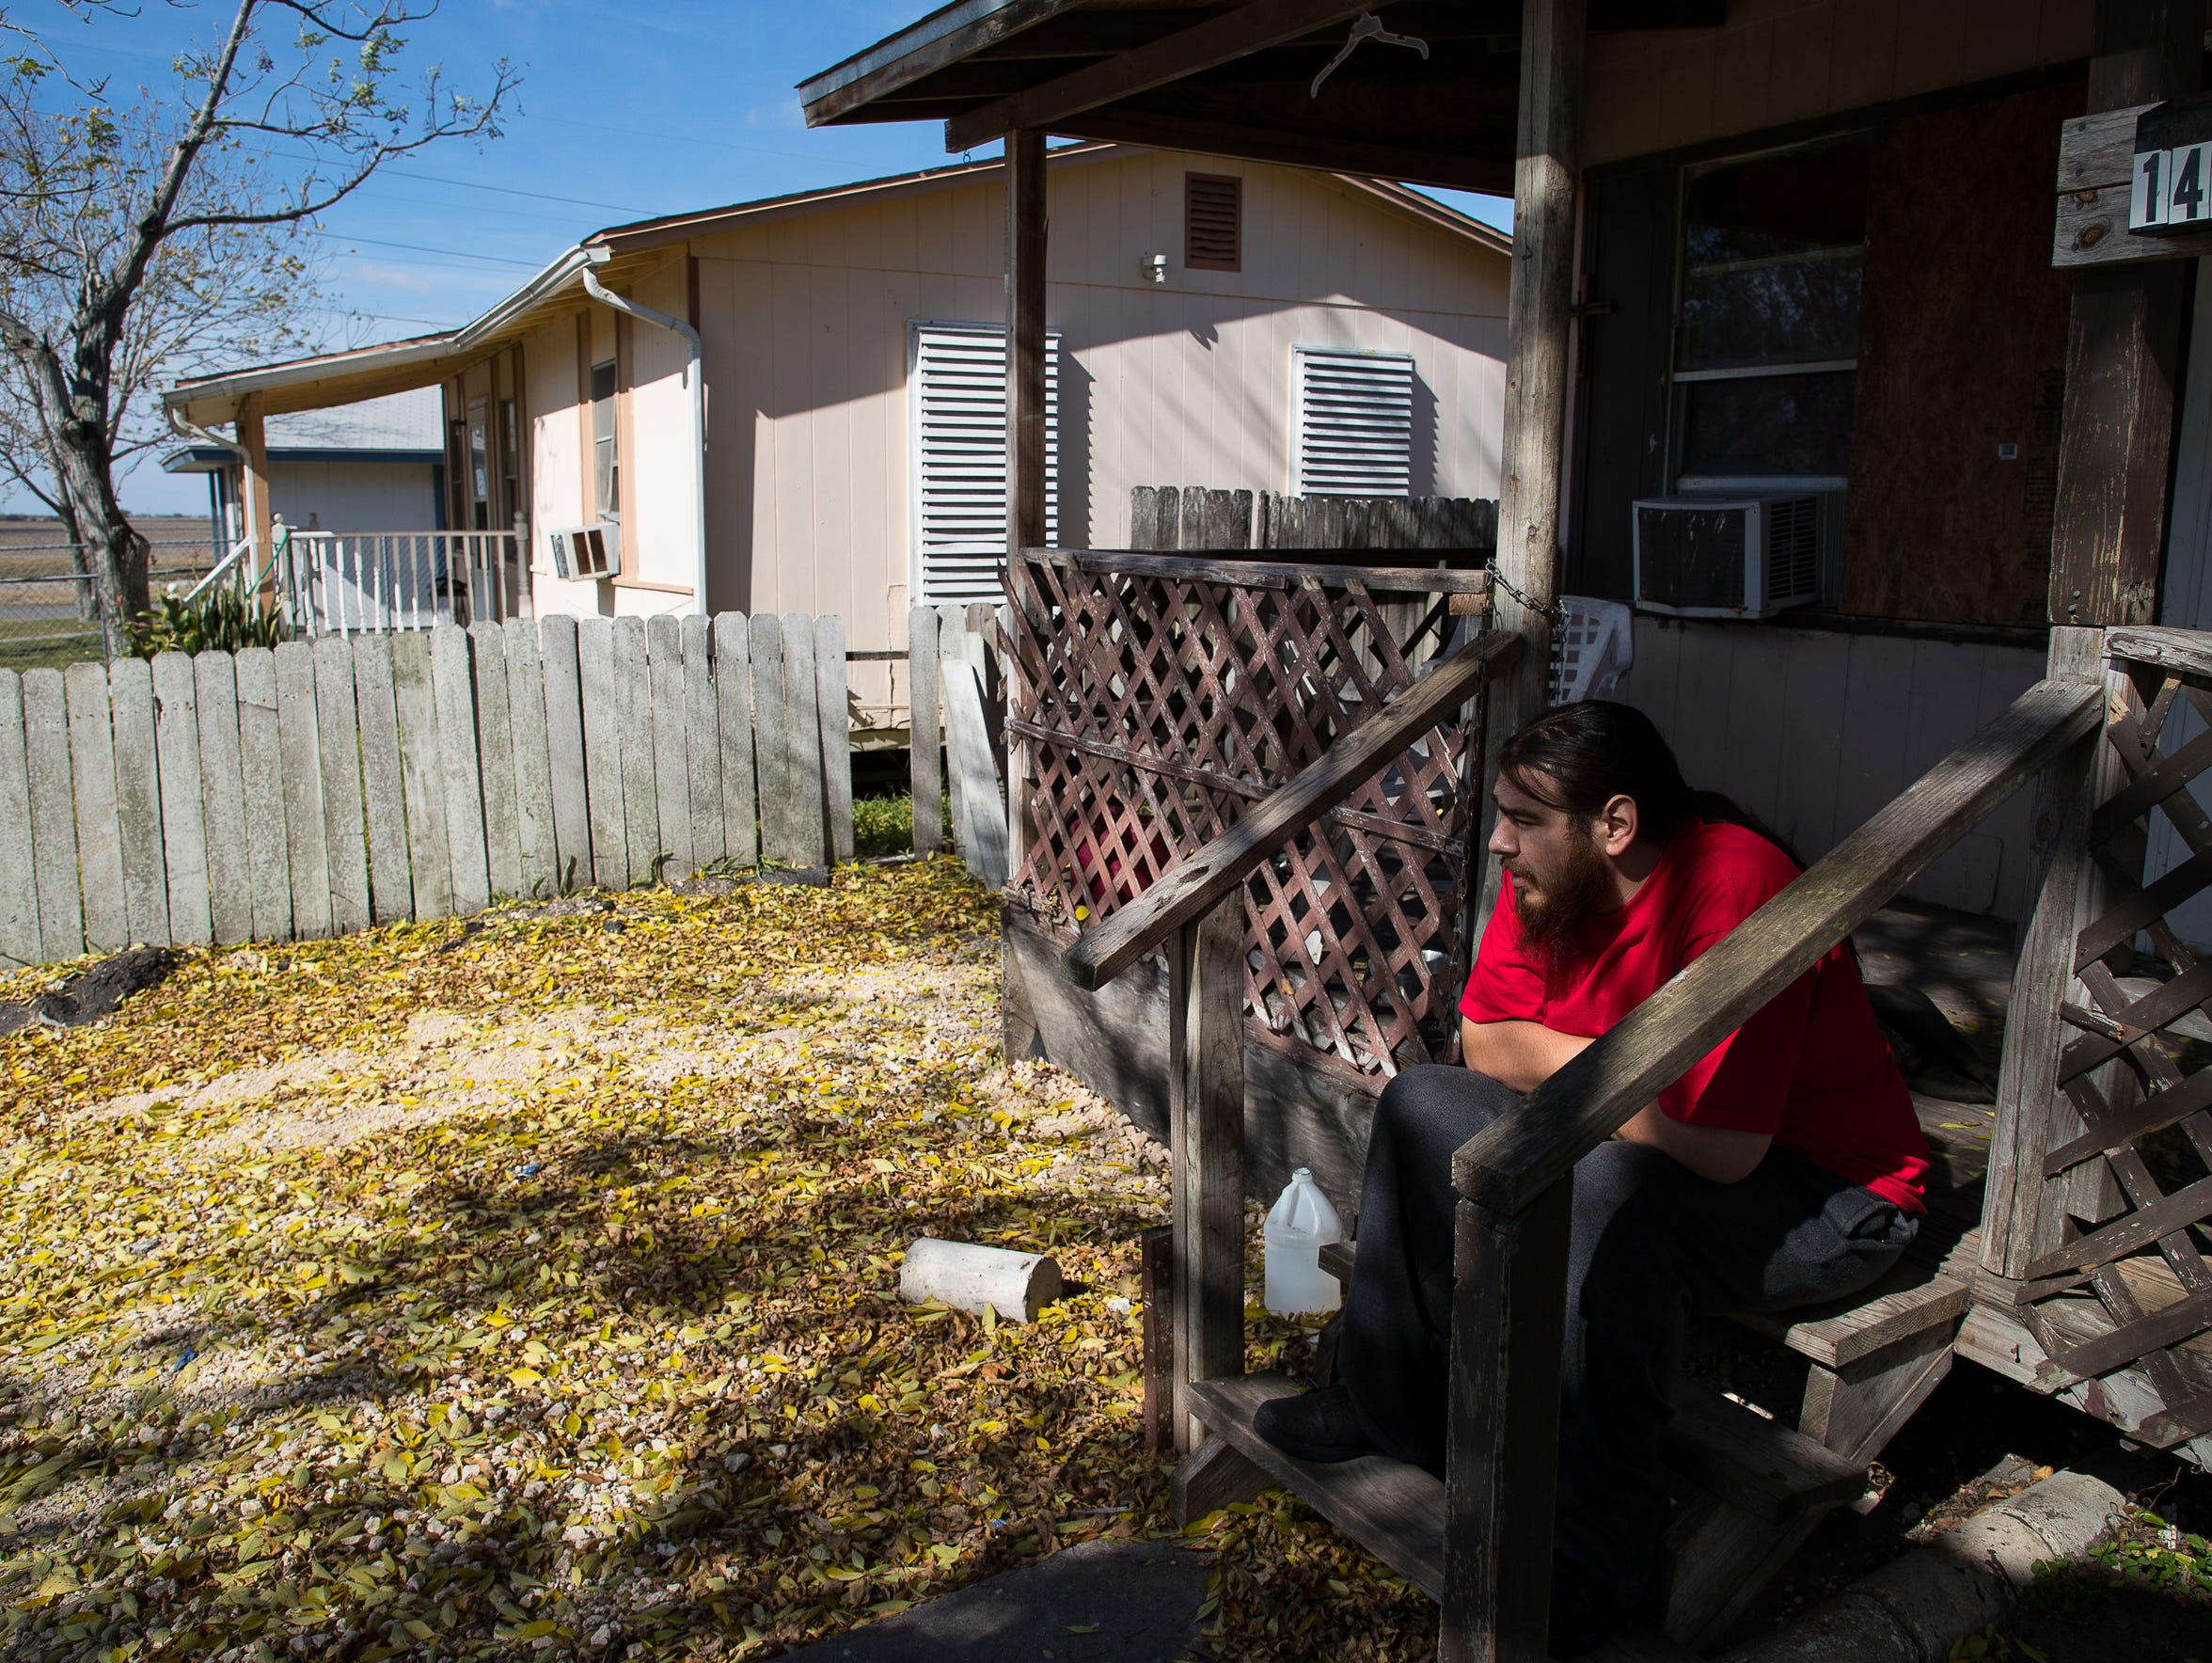 Victoriano Vasquez sits on the front porch of his in-laws' home on Dorado Street. The home, under a flood map proposed in 2015, would be considered as being in a floodway. The area was classified in 1985 flood maps as being at low risk for flooding.